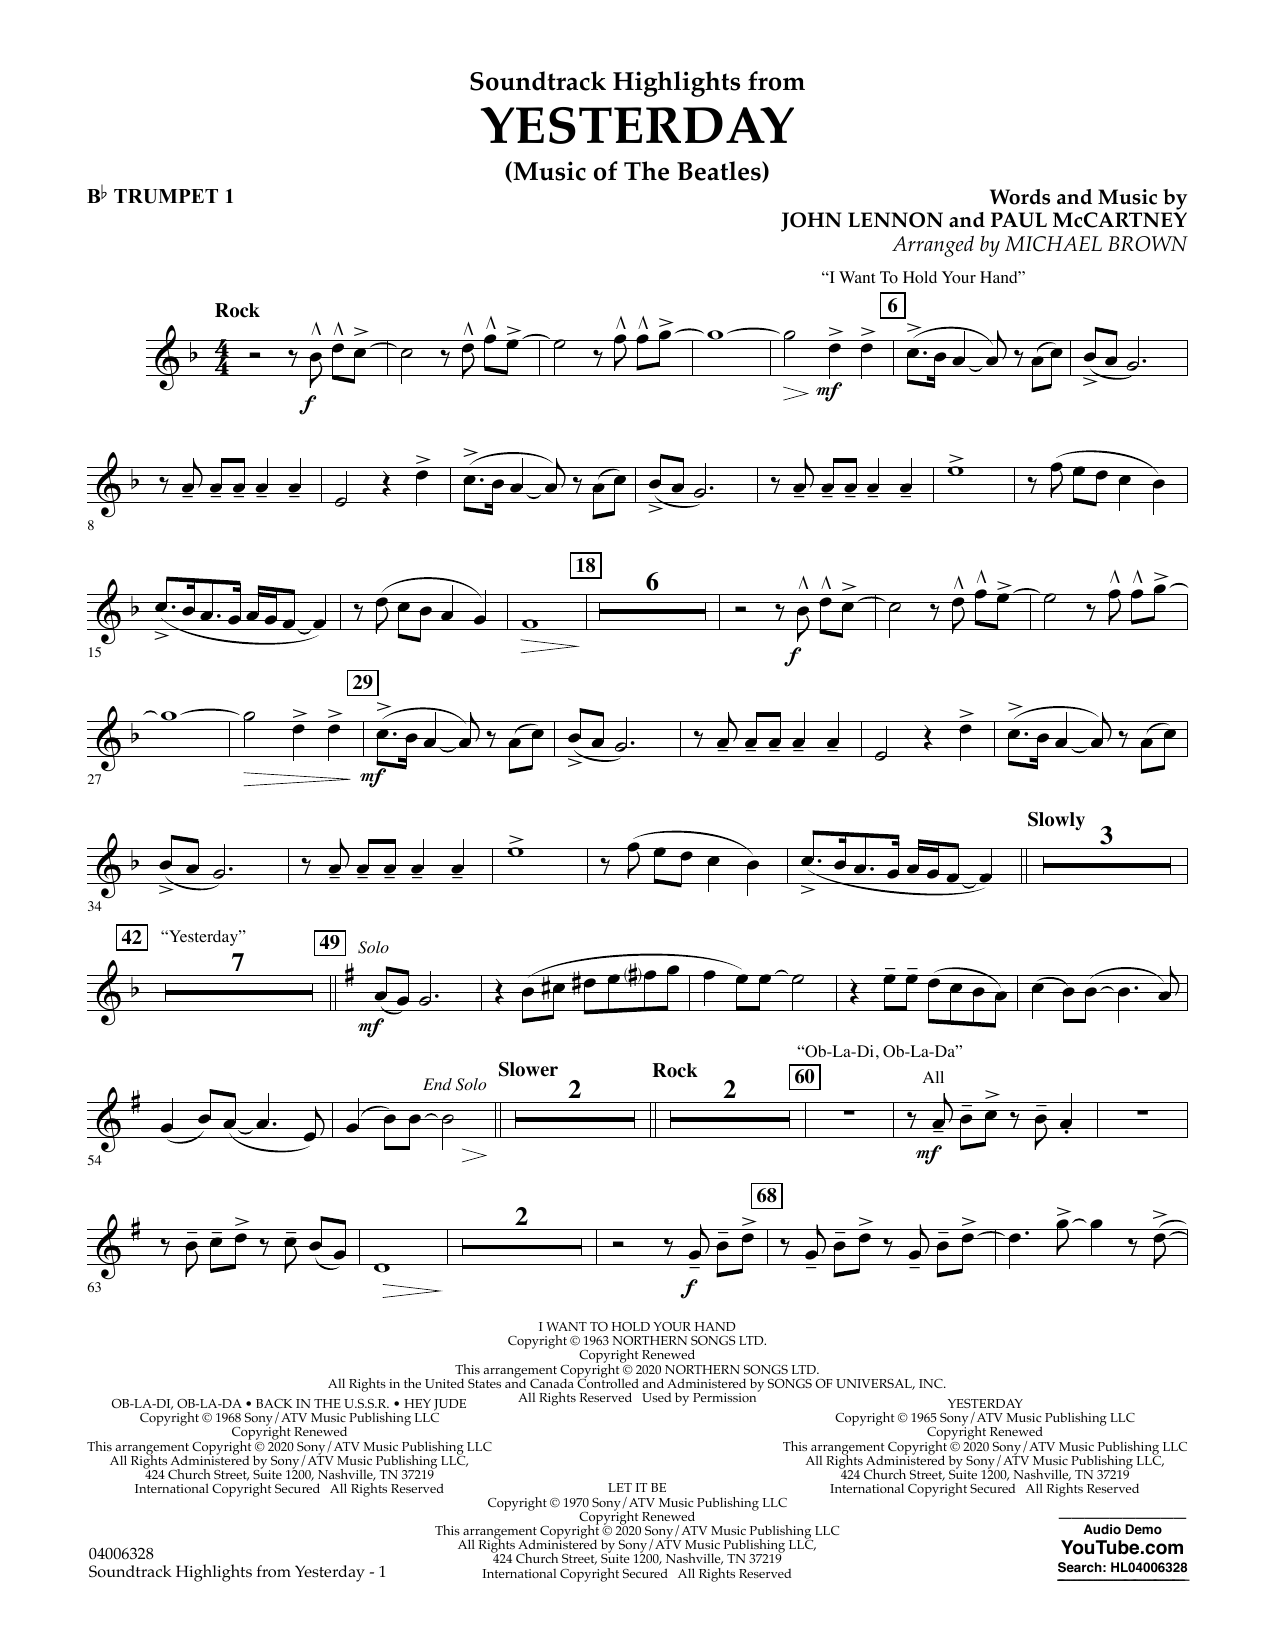 Highlights from Yesterday (Music Of The Beatles) (arr. Michael Brown) - Bb Trumpet 1 (Concert Band)